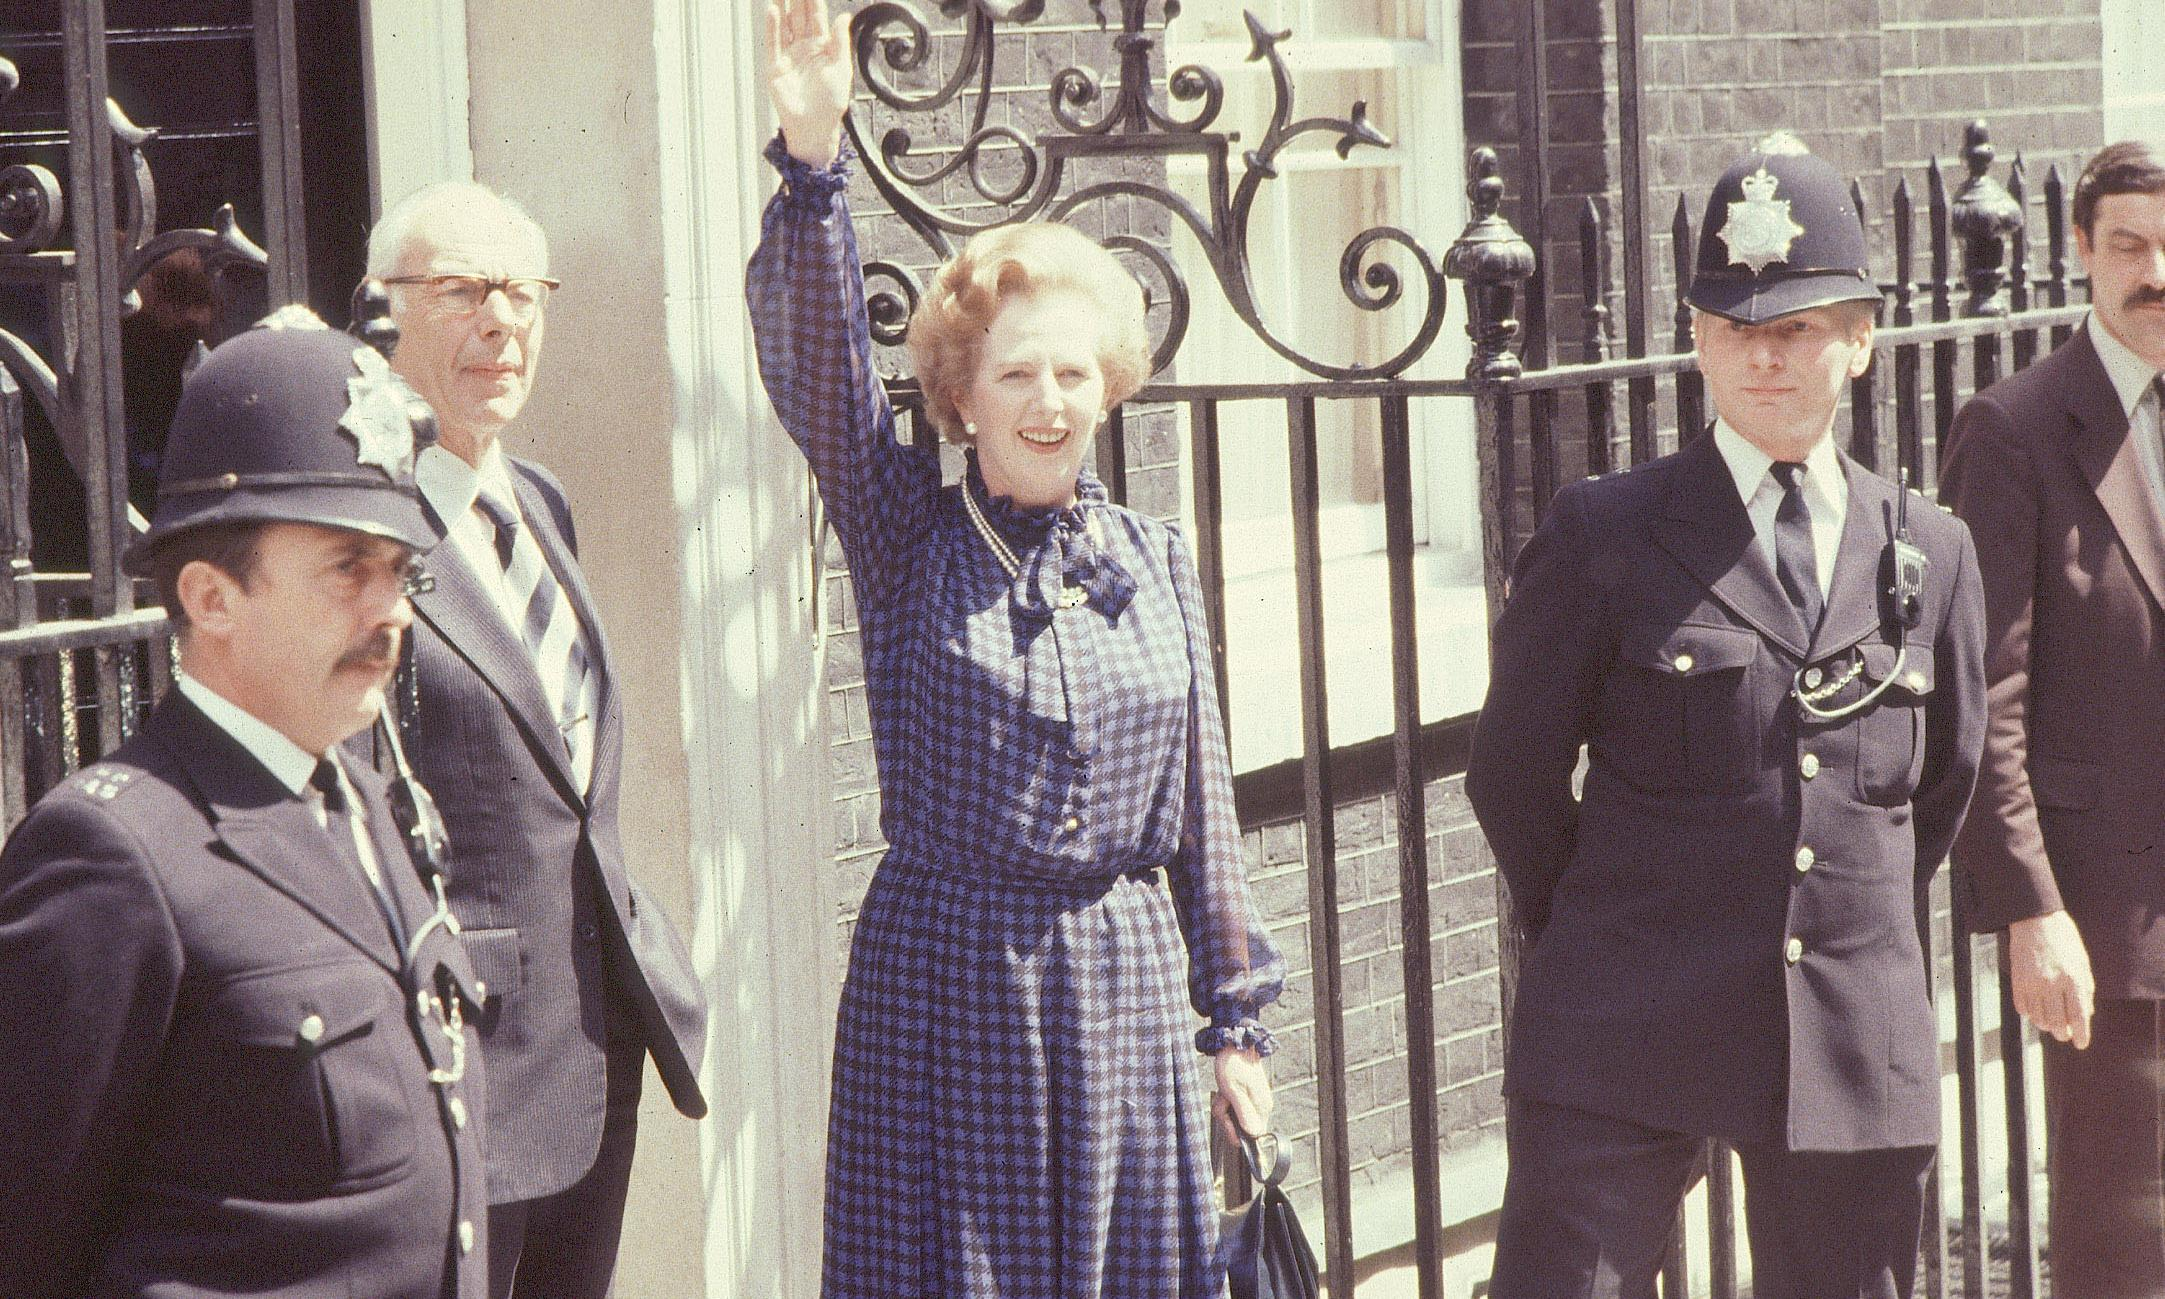 From Thatcher to Brexit: this Tory folly was 40 years in the making